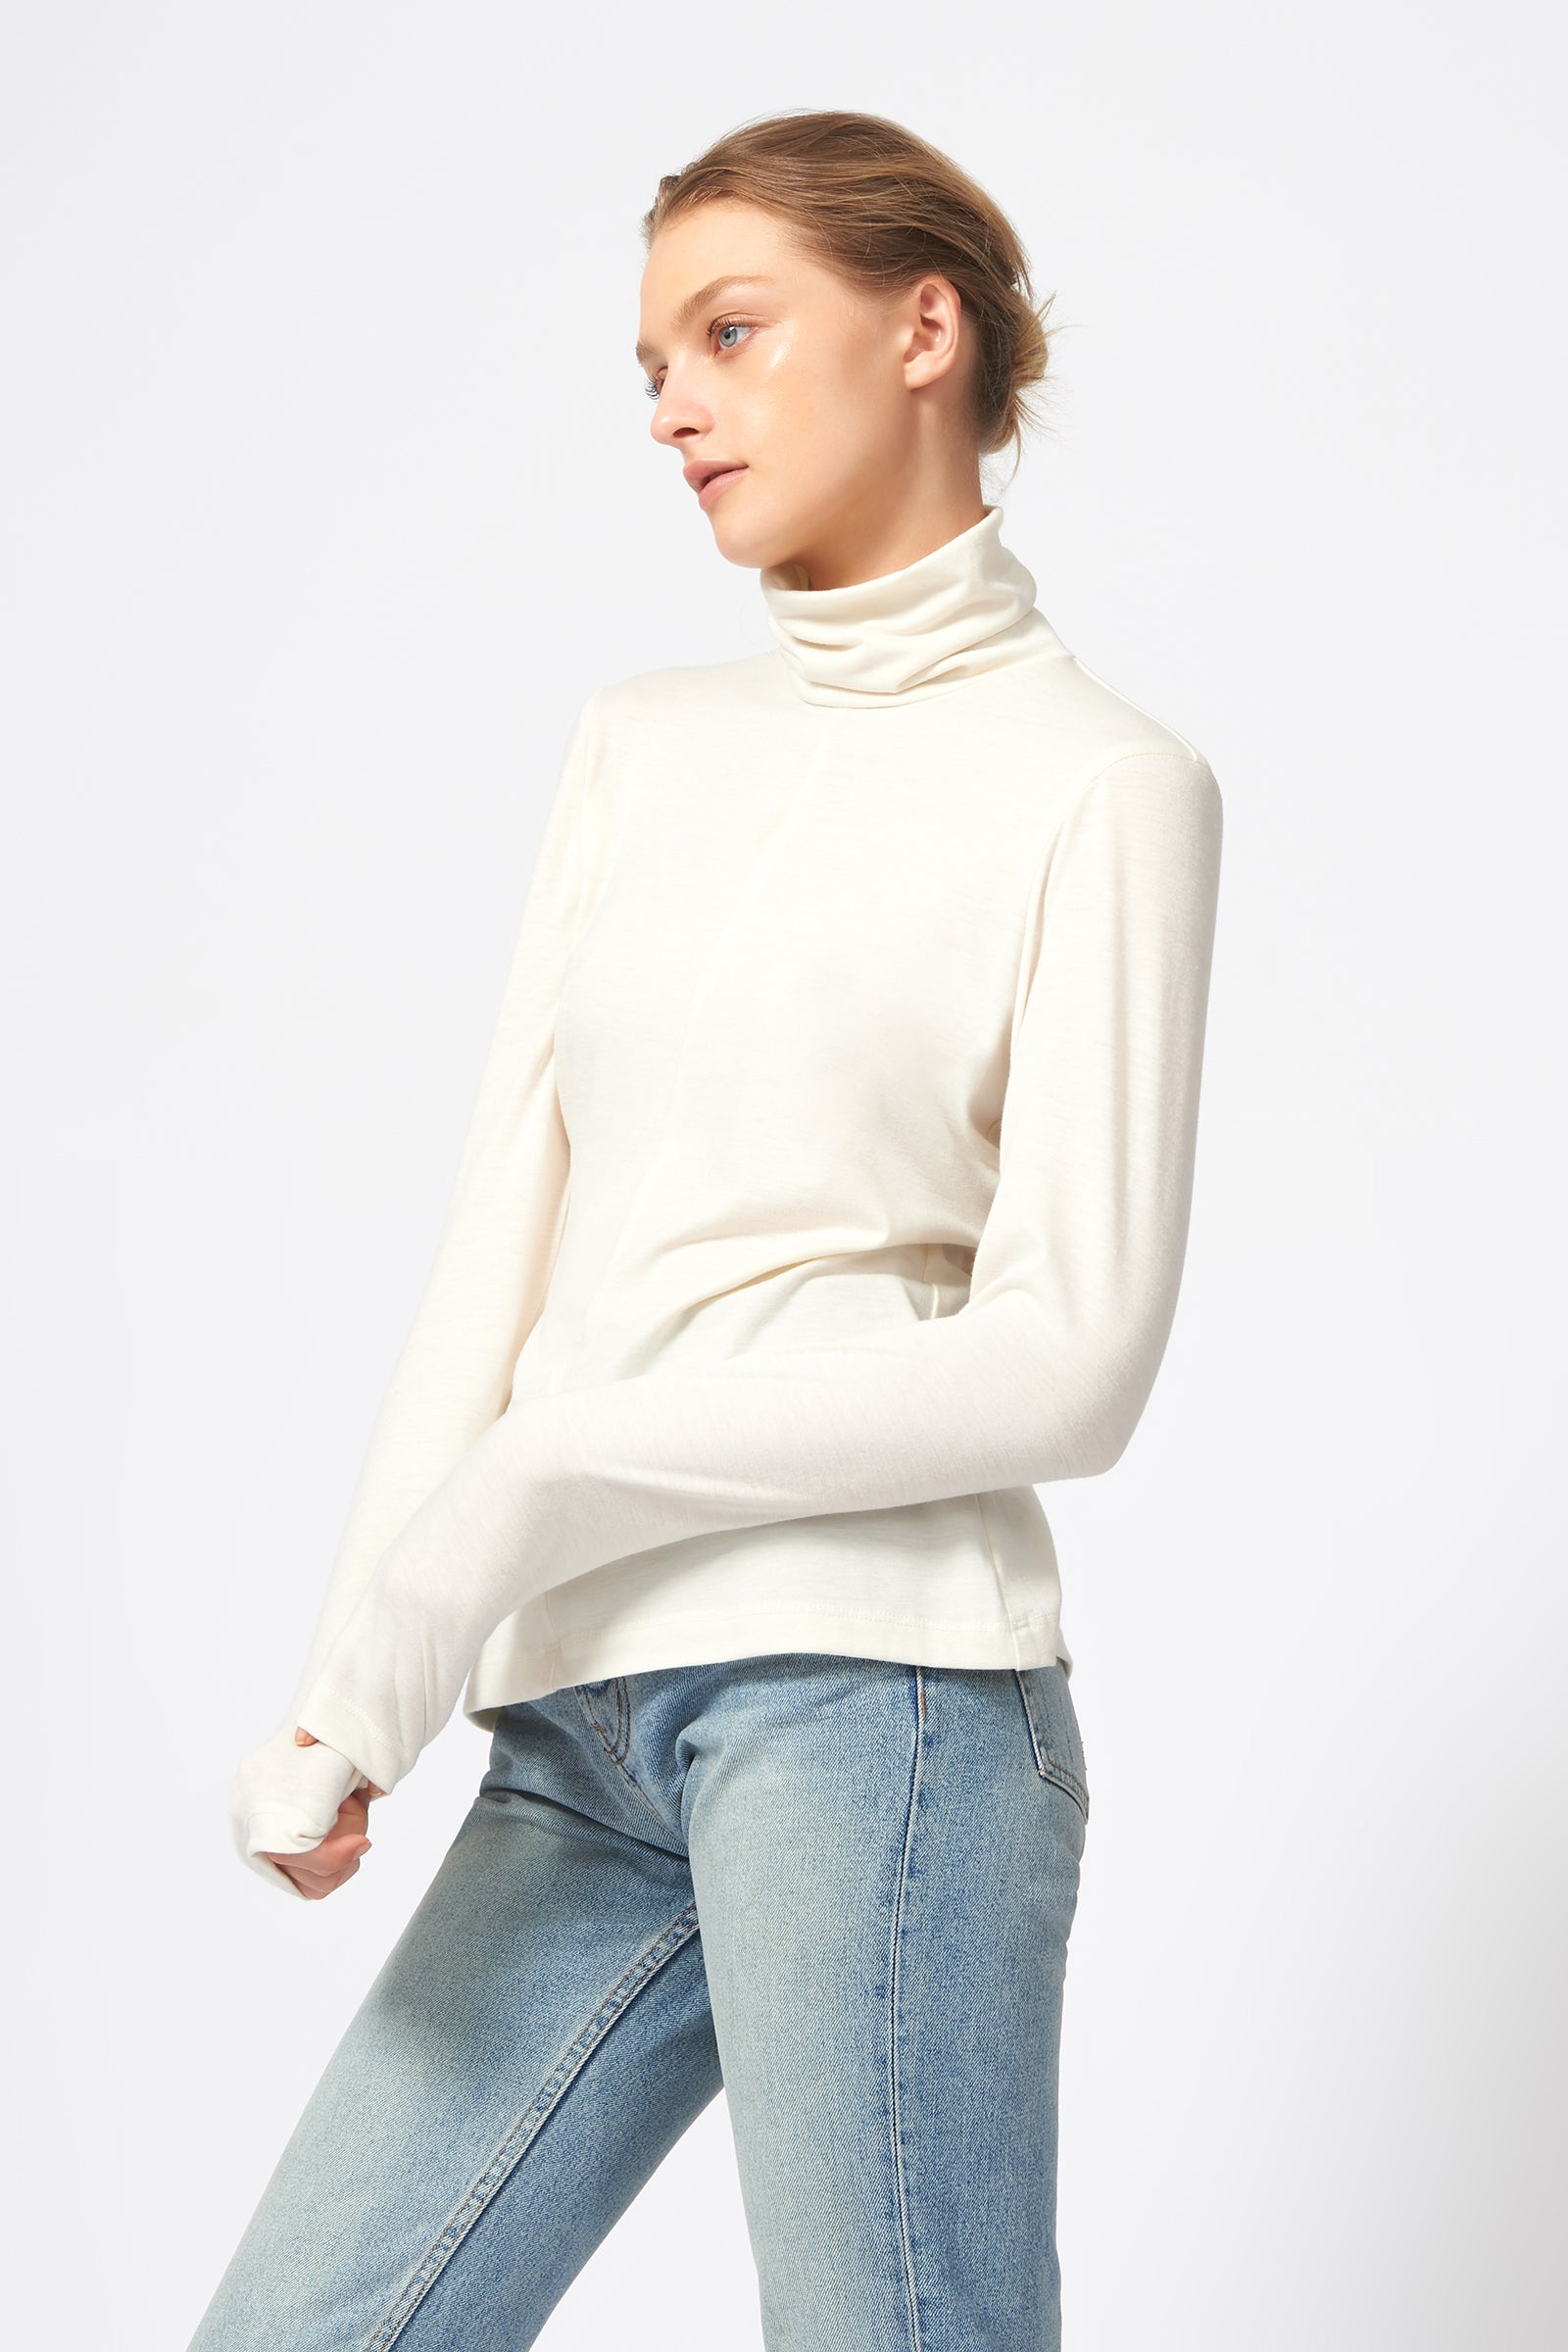 Kal Rieman Seamed Turtleneck in Ivory on Model Side View